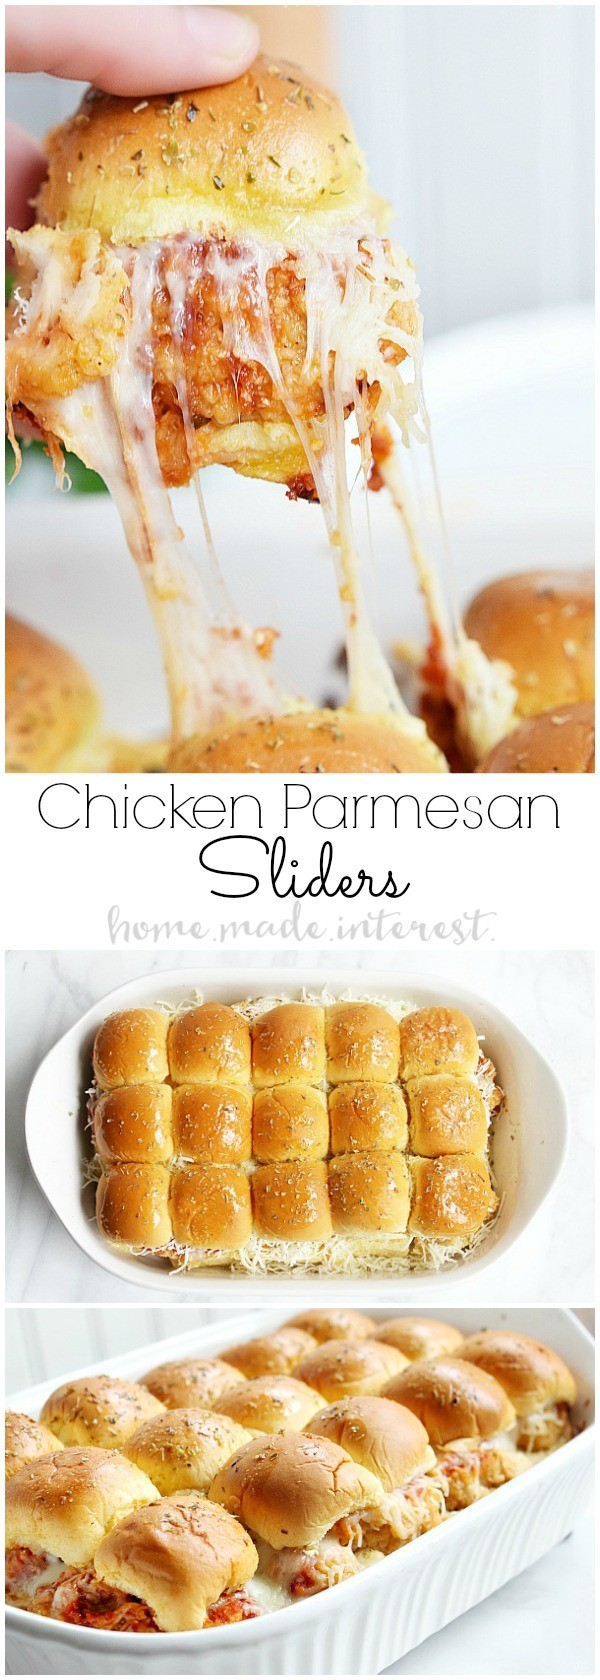 50 Best Chicken Recipes Ever - Get the recipe ♥ Chicken Parmesan Sliders @recipes_to_go